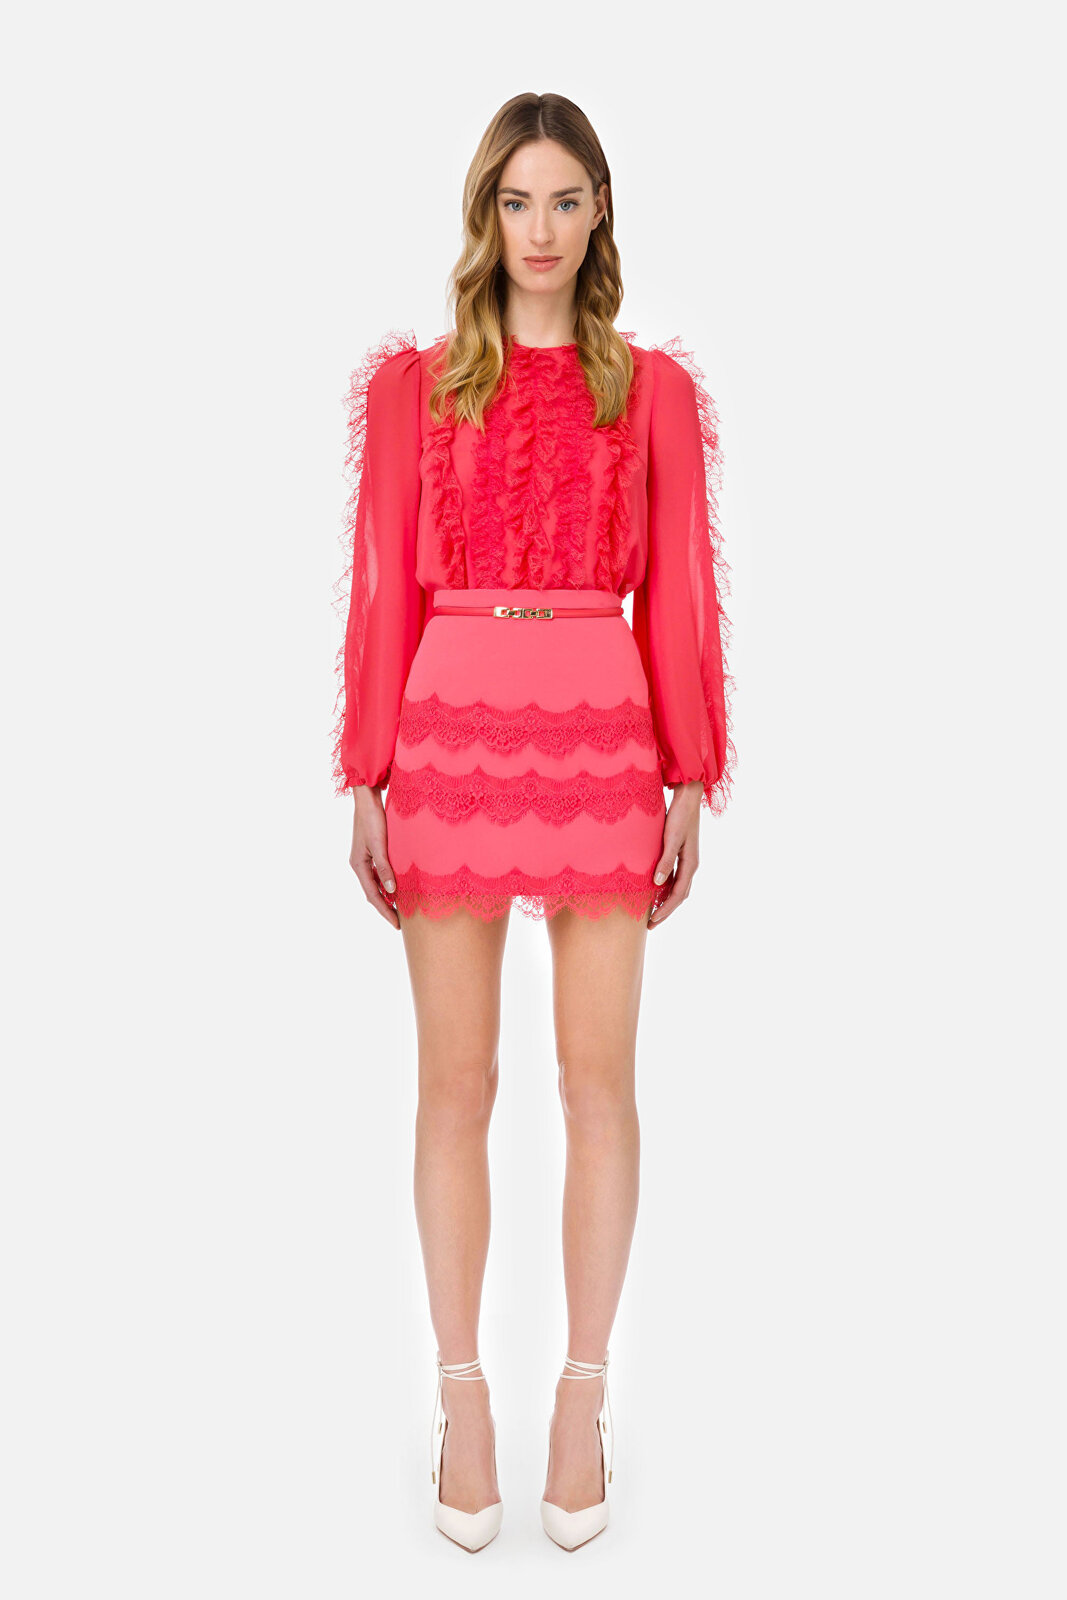 Mini Skirt With Belt And Lace - Elisabetta Franchi